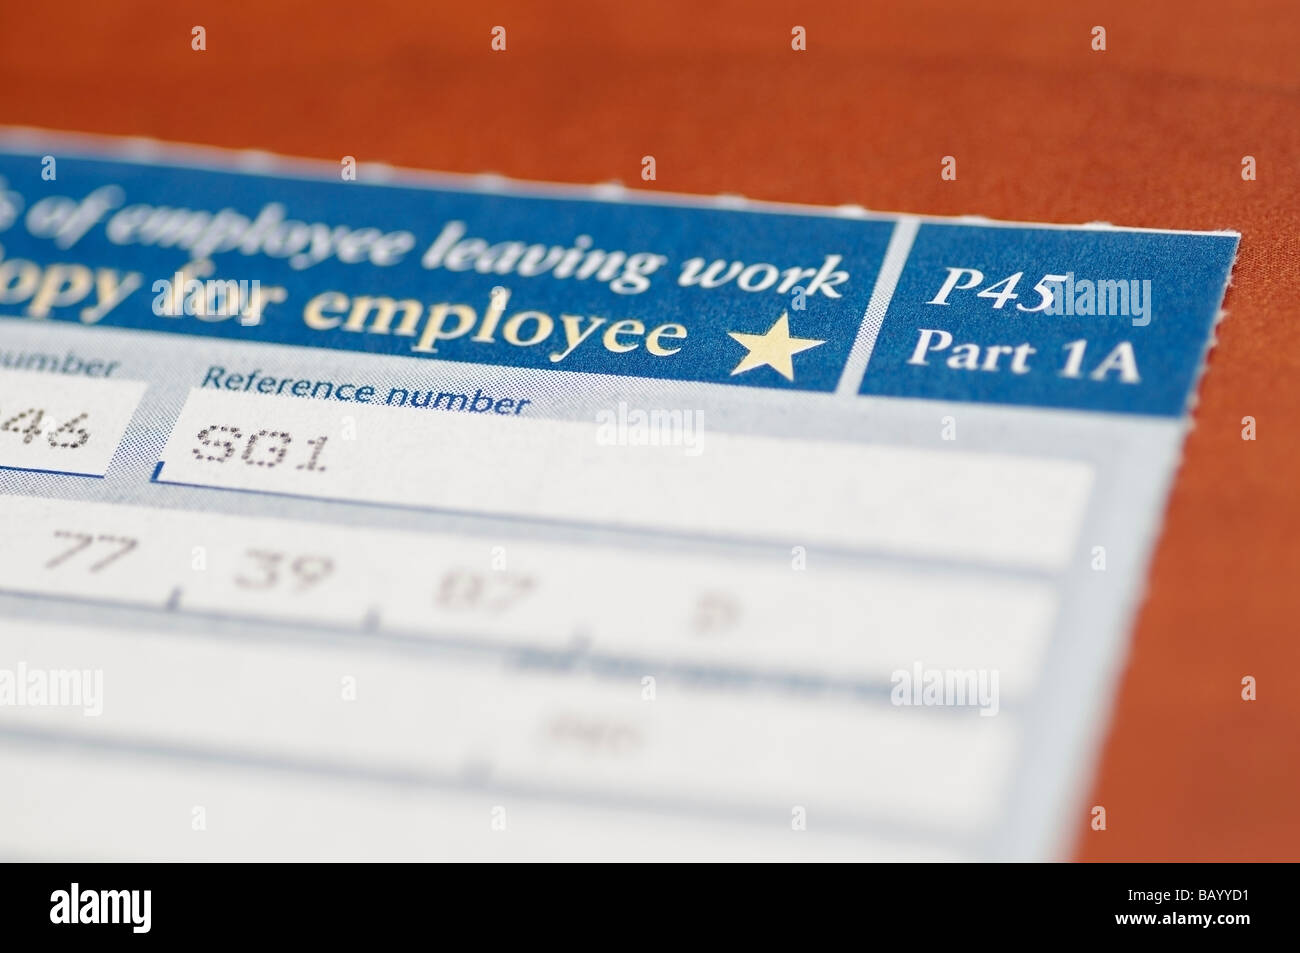 P45 Certificate Issued by HM Revenue and Customs When an Employee Leaves a Job or is Made Redundant - Stock Image